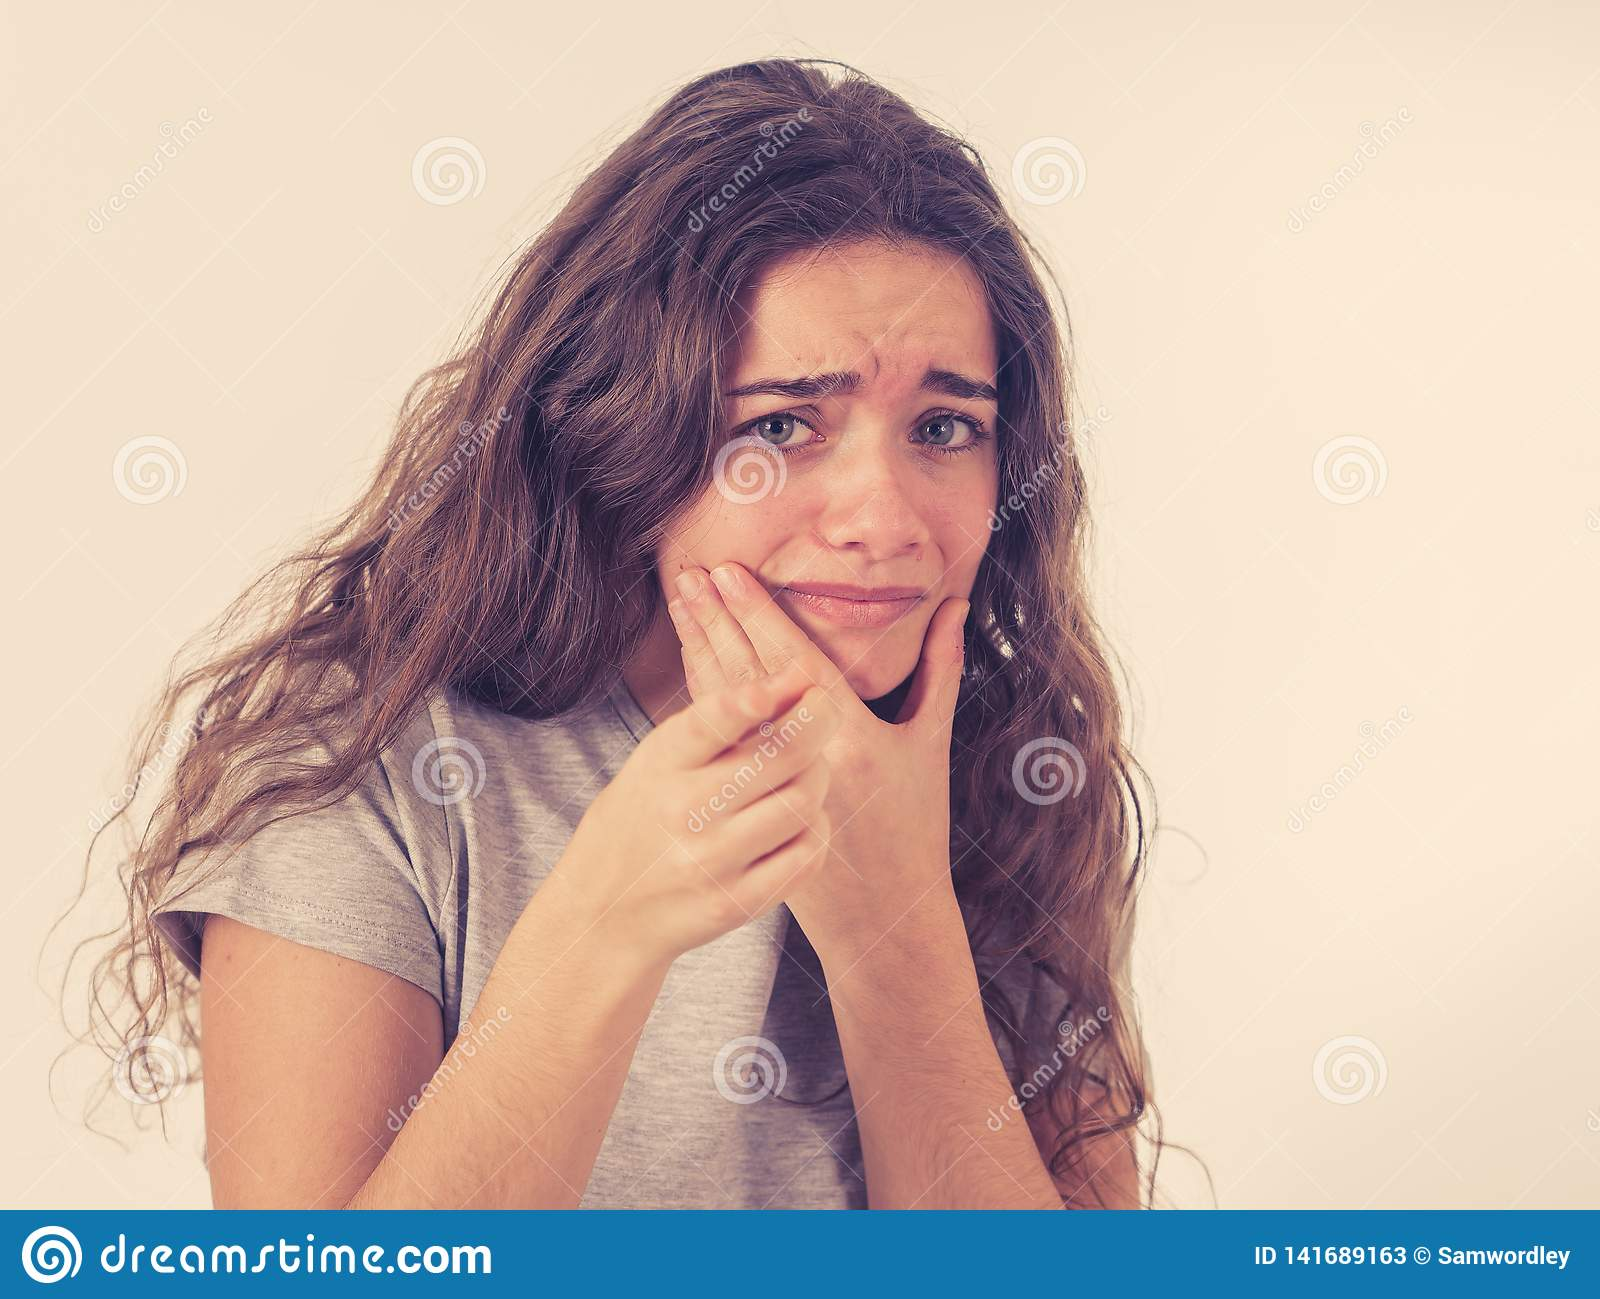 Human expressions and emotions. Young attractive teenager girl looking scared and shocked